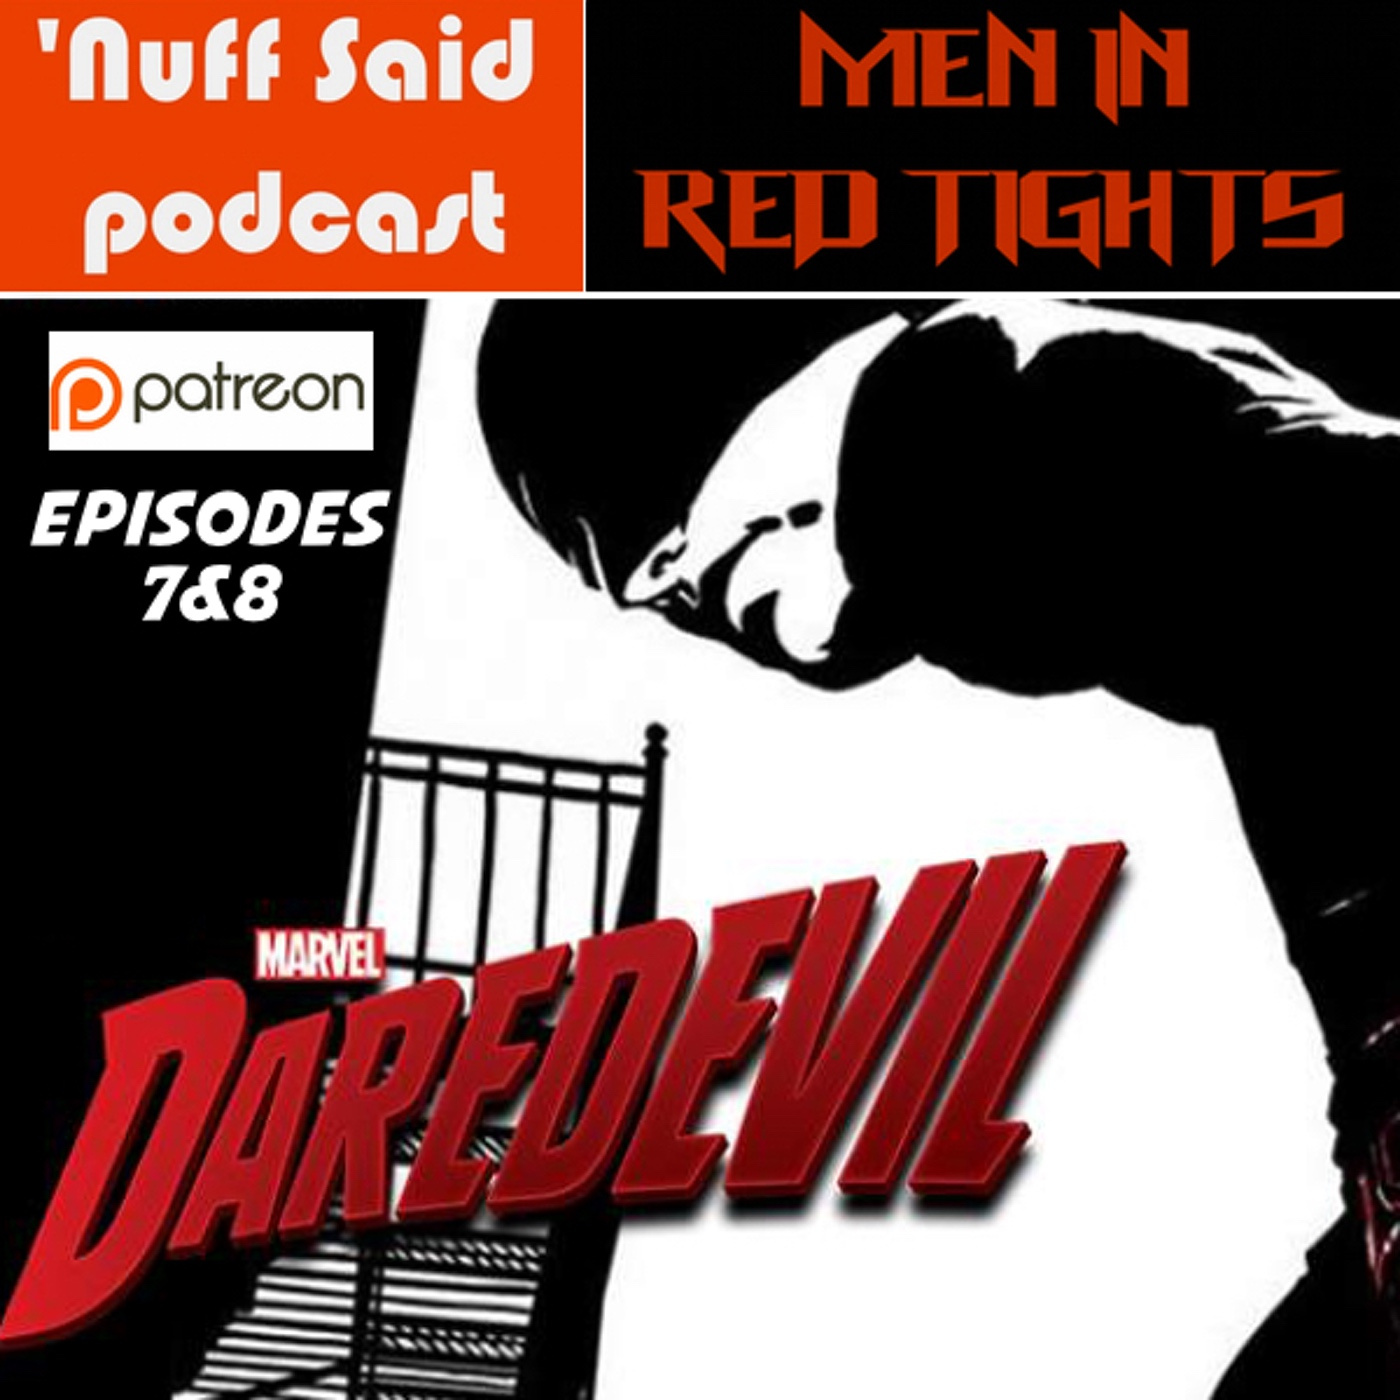 Men in Red Tights s1e7 & s1e8 of Daredevil - 'Nuff Said: The Marvel Podcast